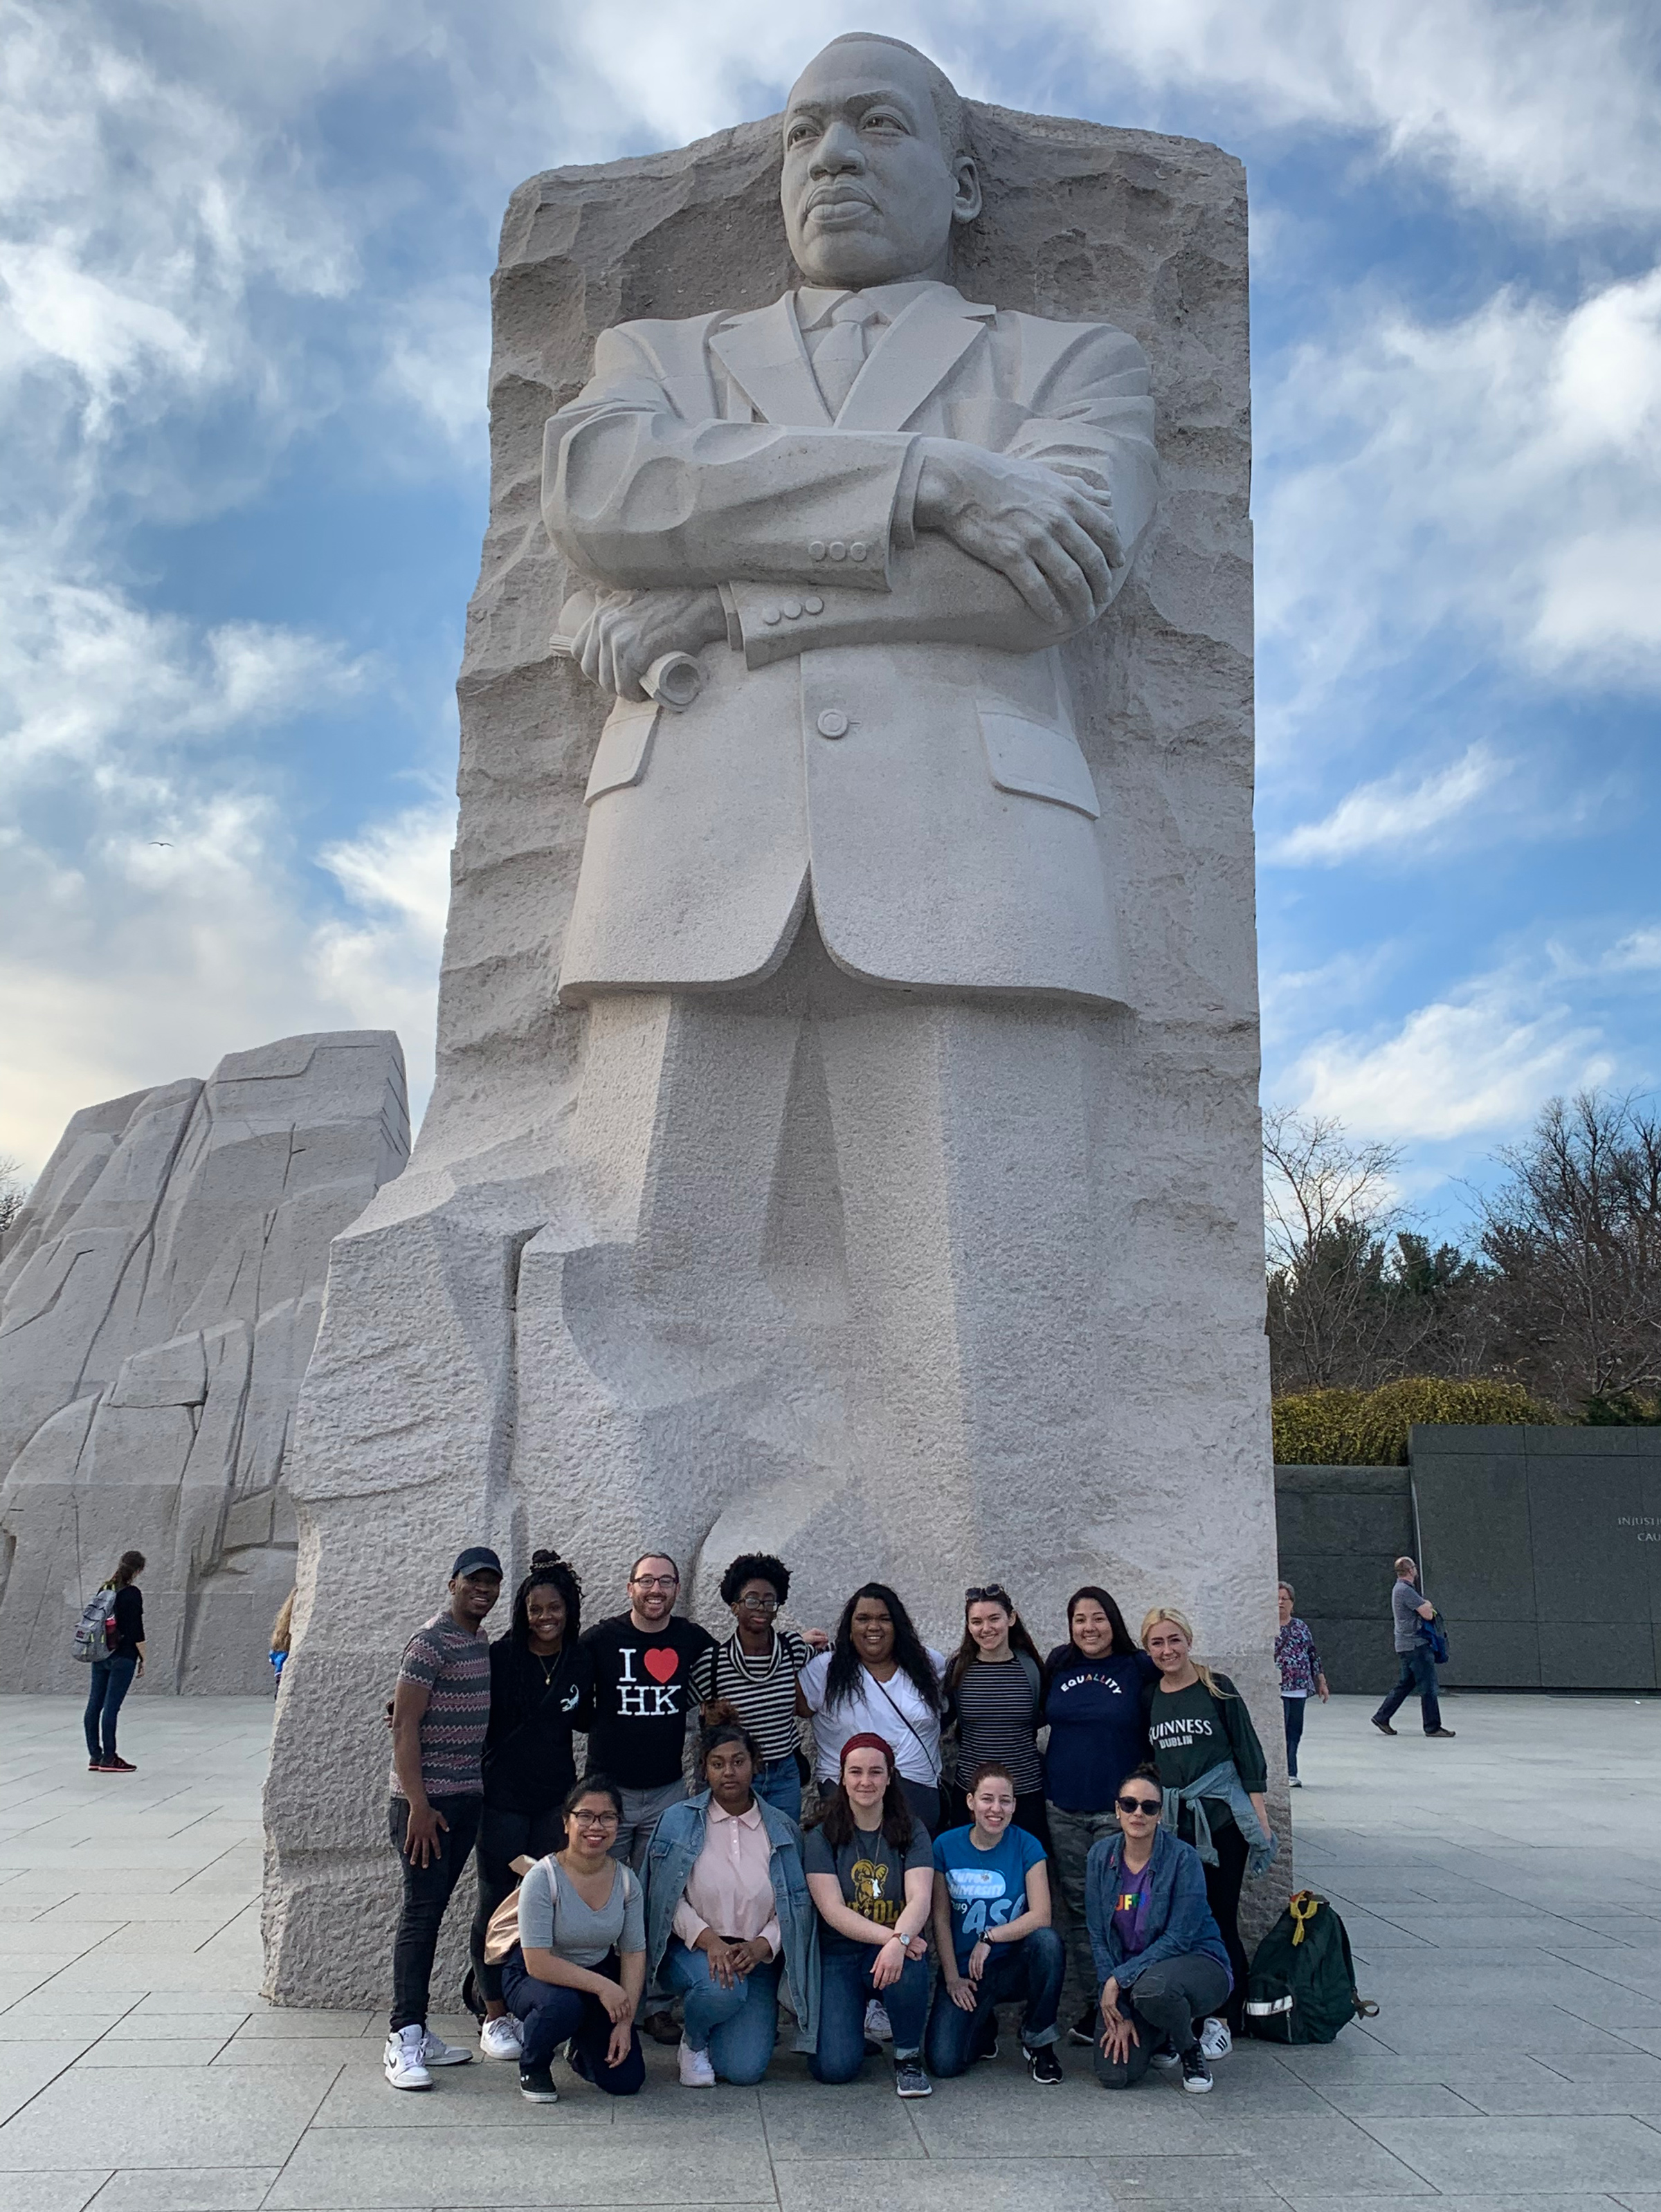 Suffolk students gather in front of the Martin Luther King, Jr. monument in Washington D.C.